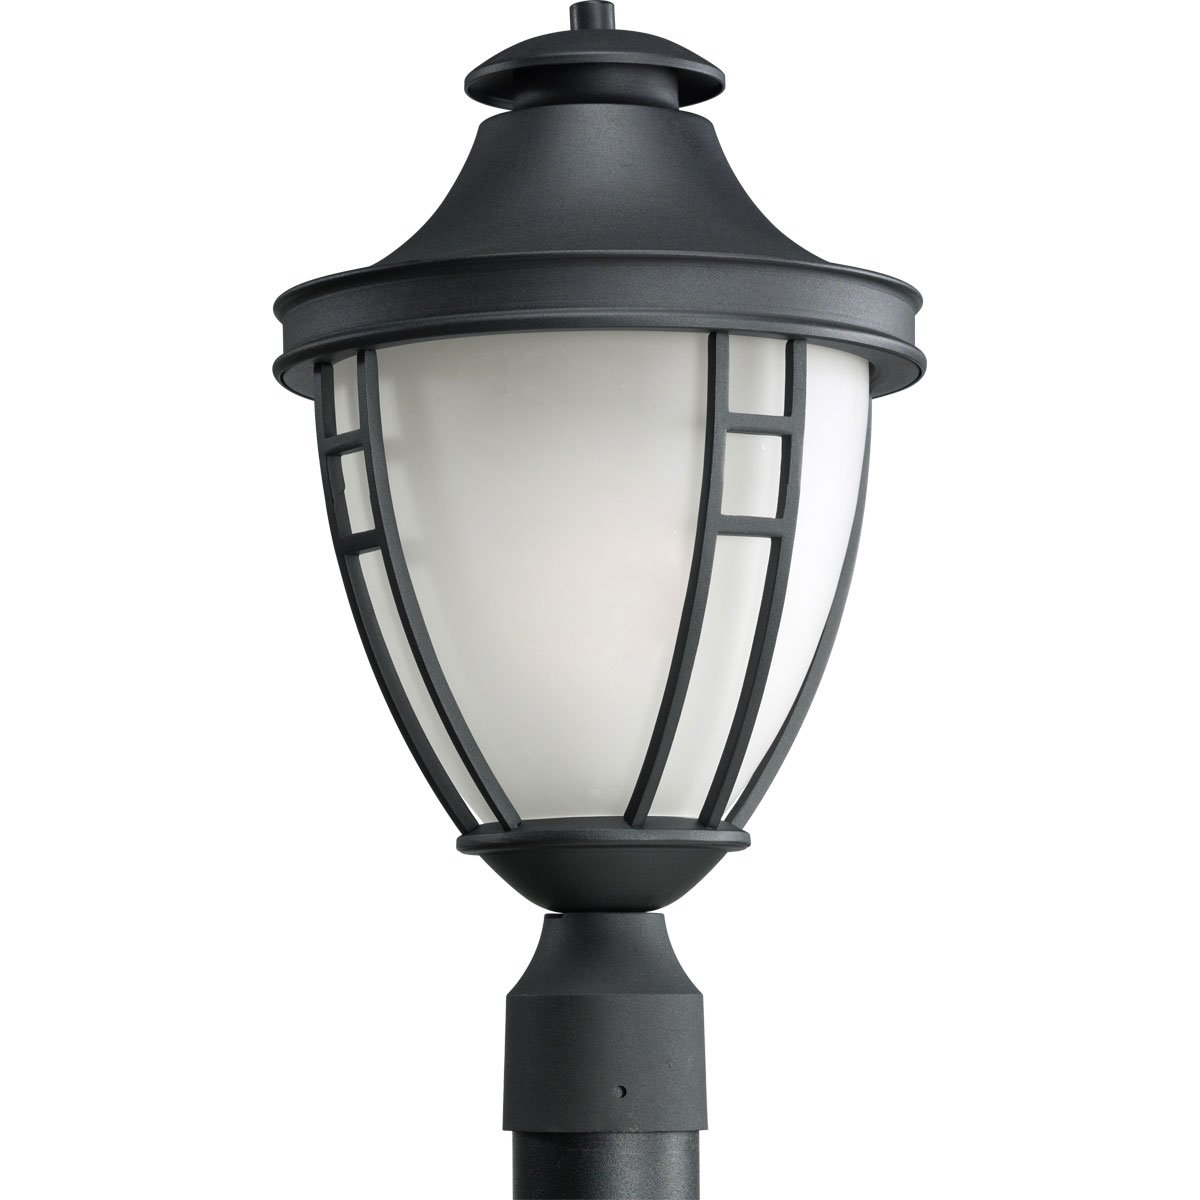 Progress Lighting P5402-31 1-Light Post Lantern with Etched Glass In Black Finish, Textured Black by Progress Lighting